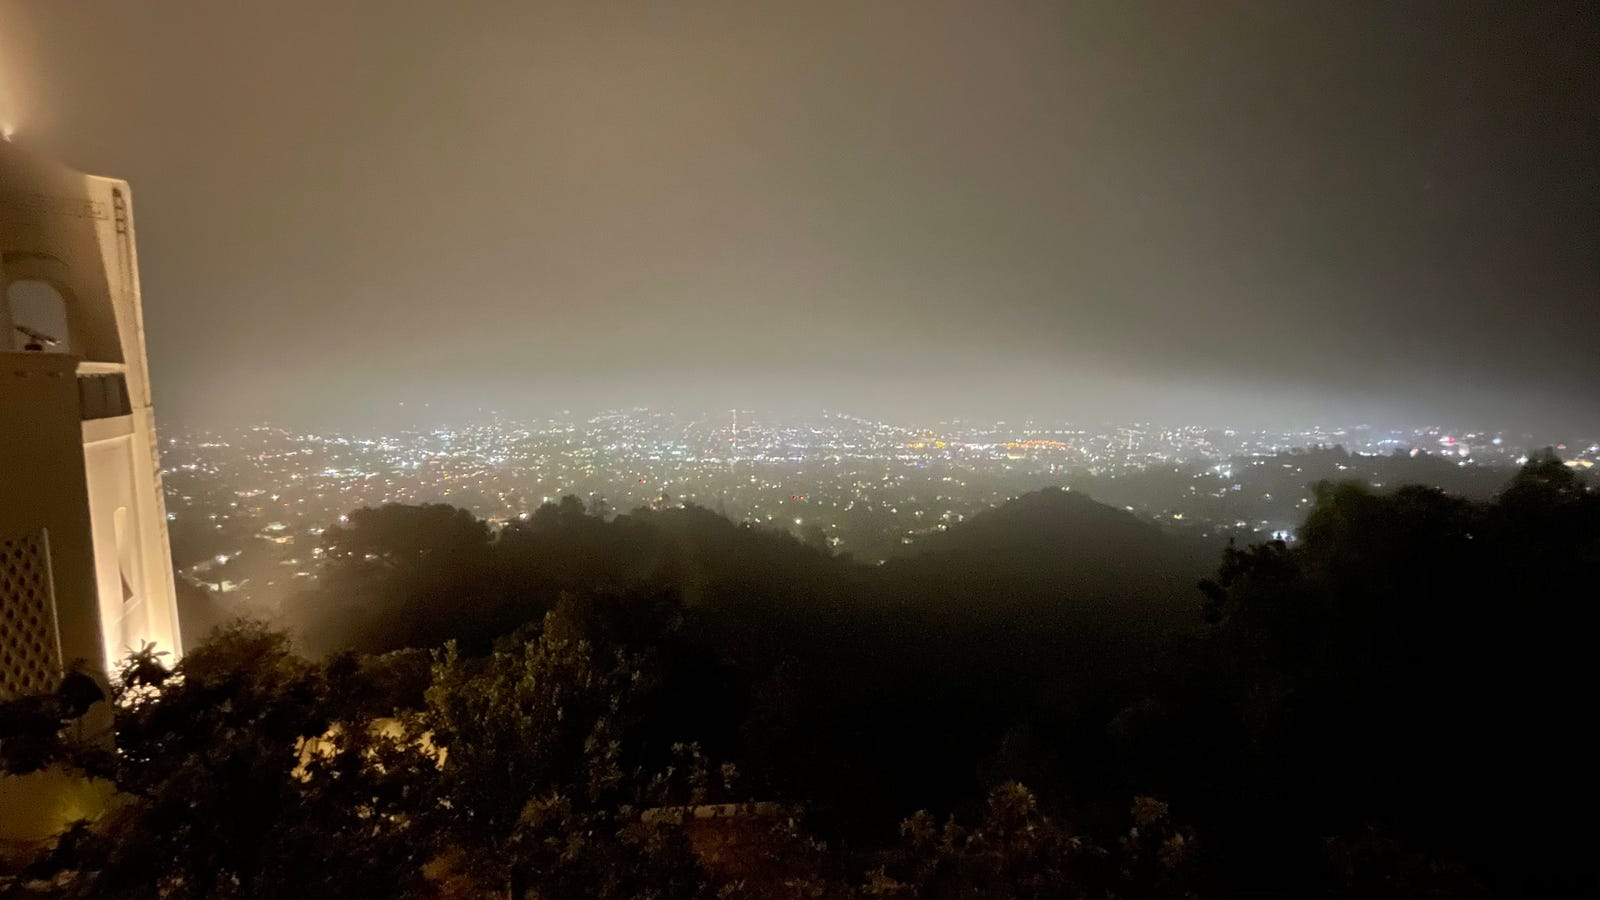 Challenging iPhone 12 Night Mode ultra-wide-angle shot of a foggy evening over LA.